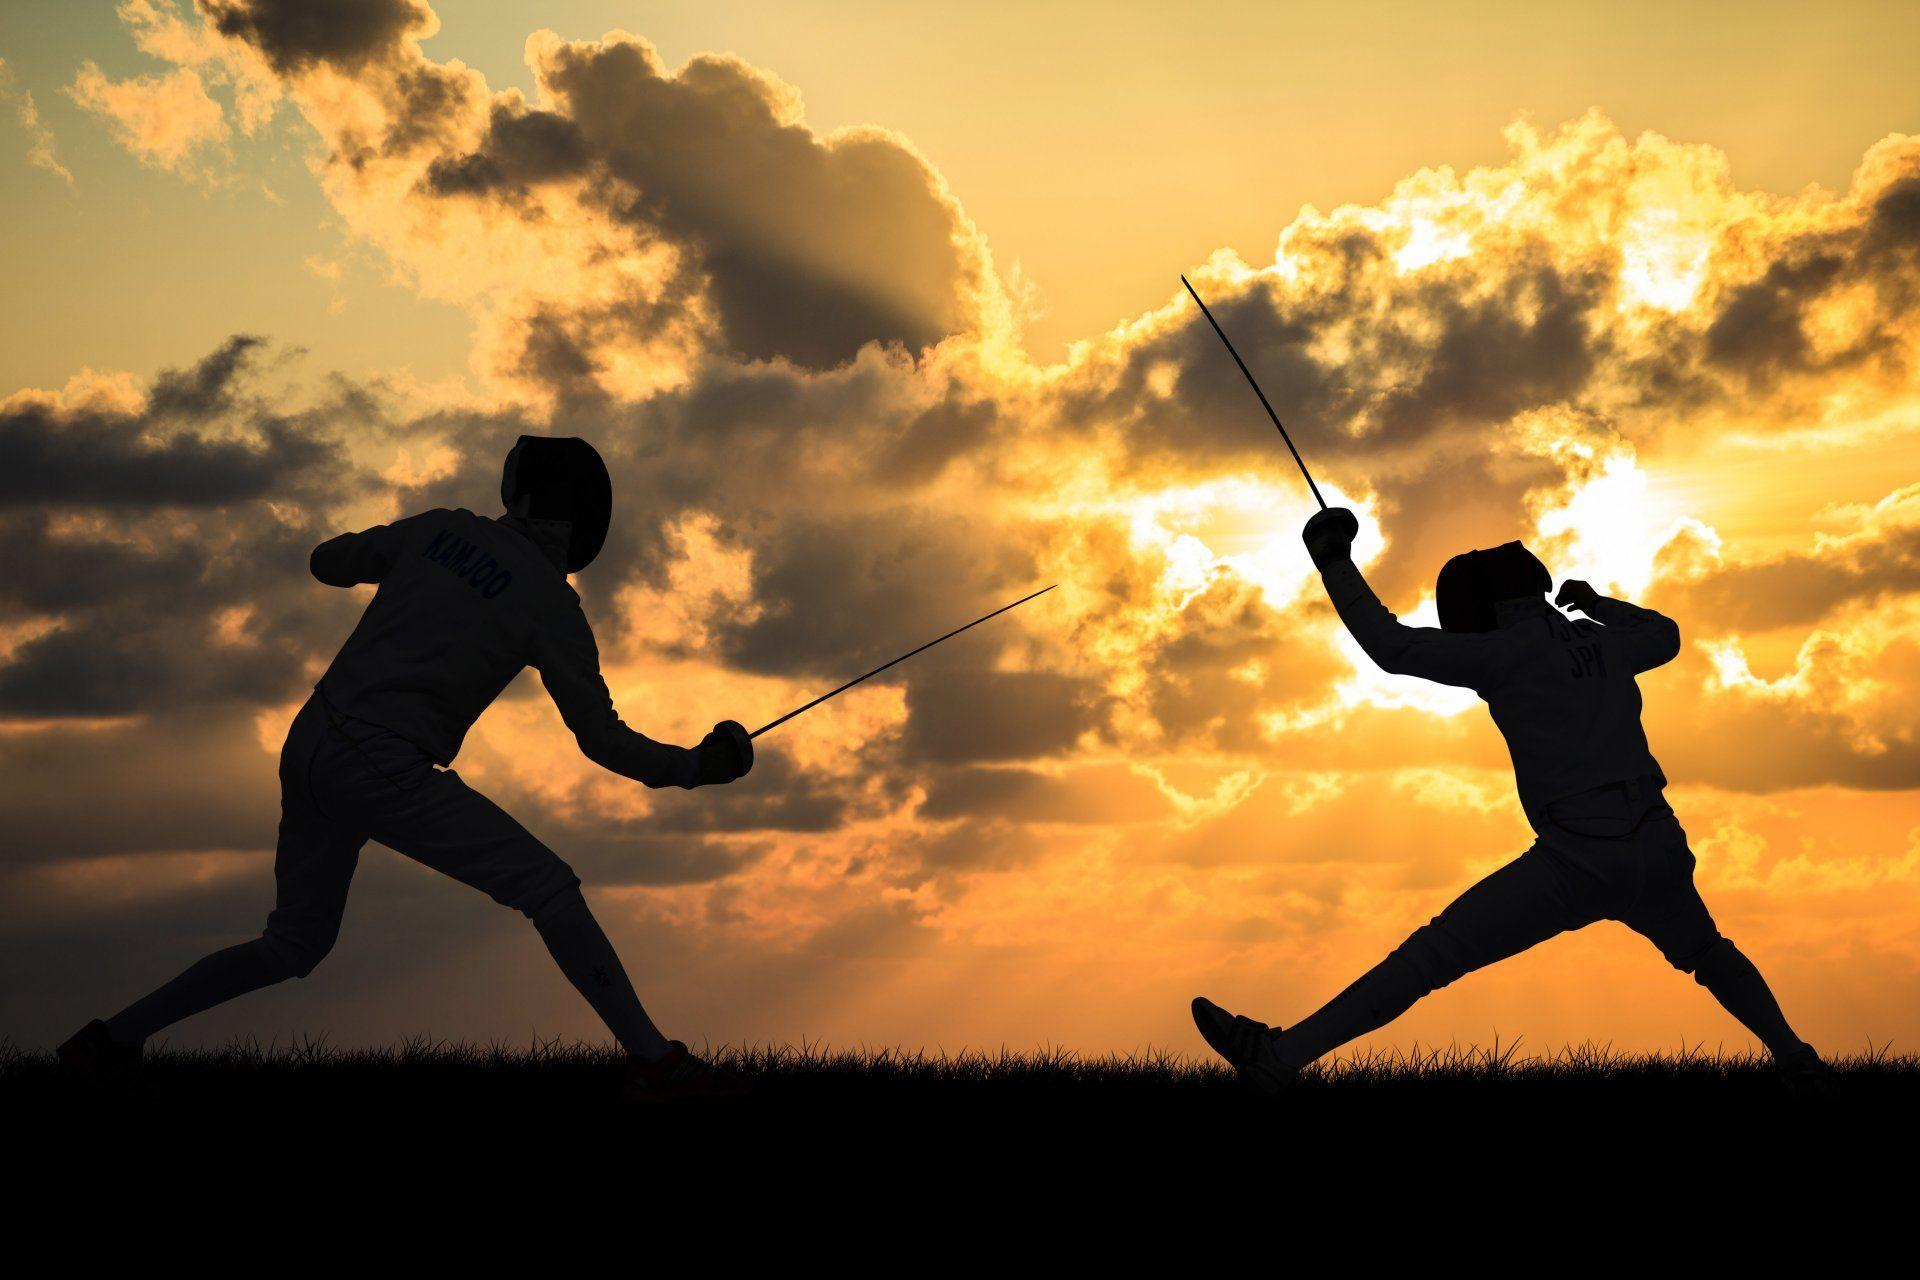 sports fencing combat foil the sword sword silhouettes outright ...